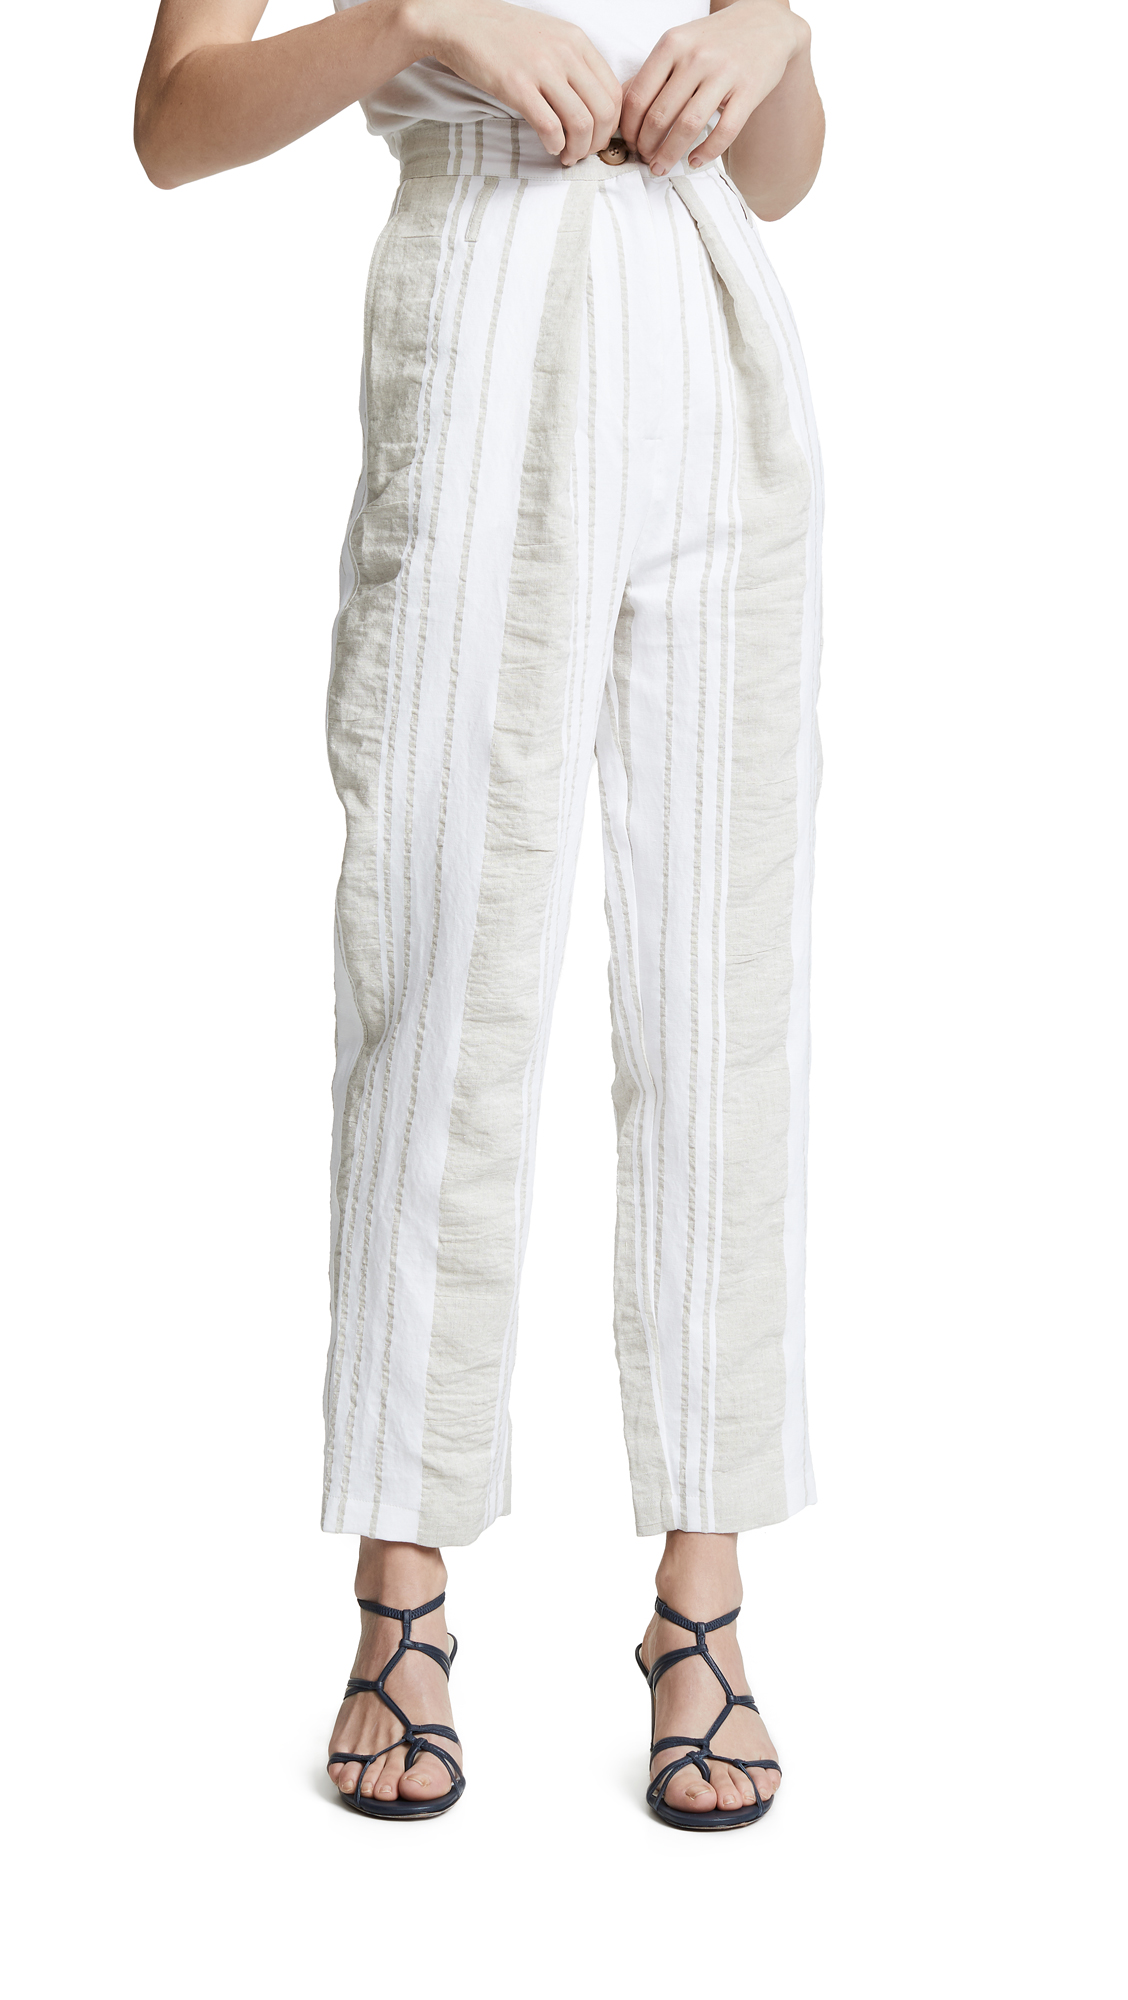 ANNA OCTOBER Soft Stripe Pants in Beige/White